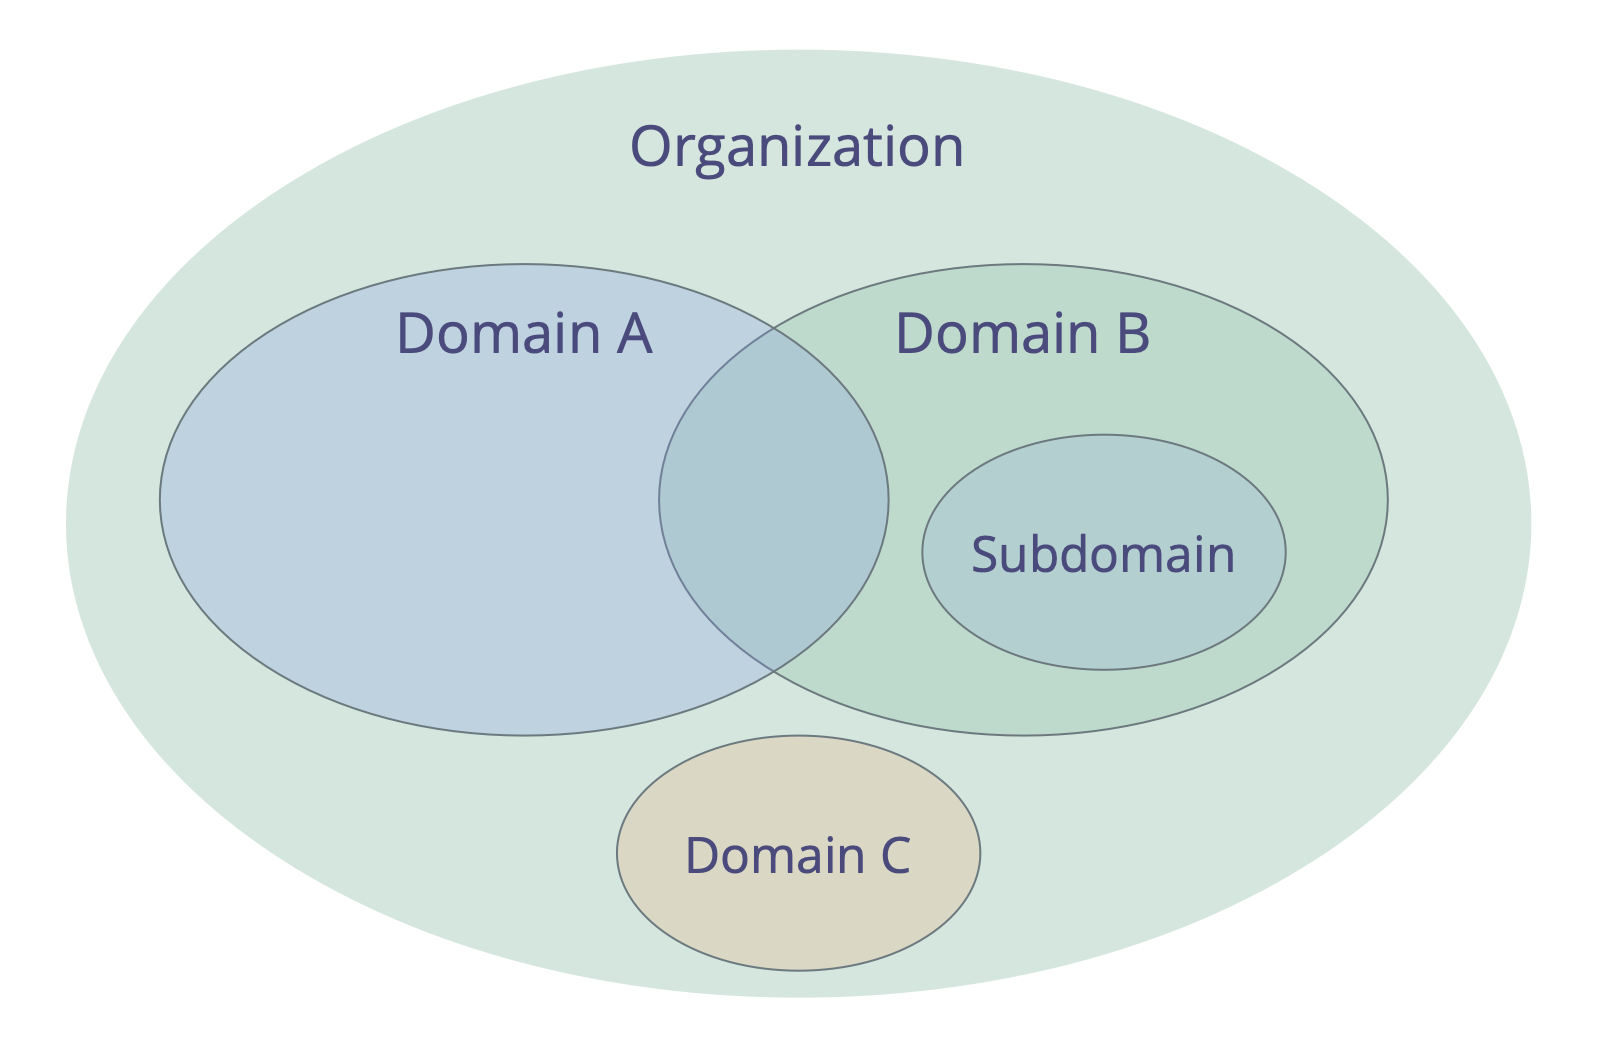 Domains may overlap and/or be fully contained within other domains